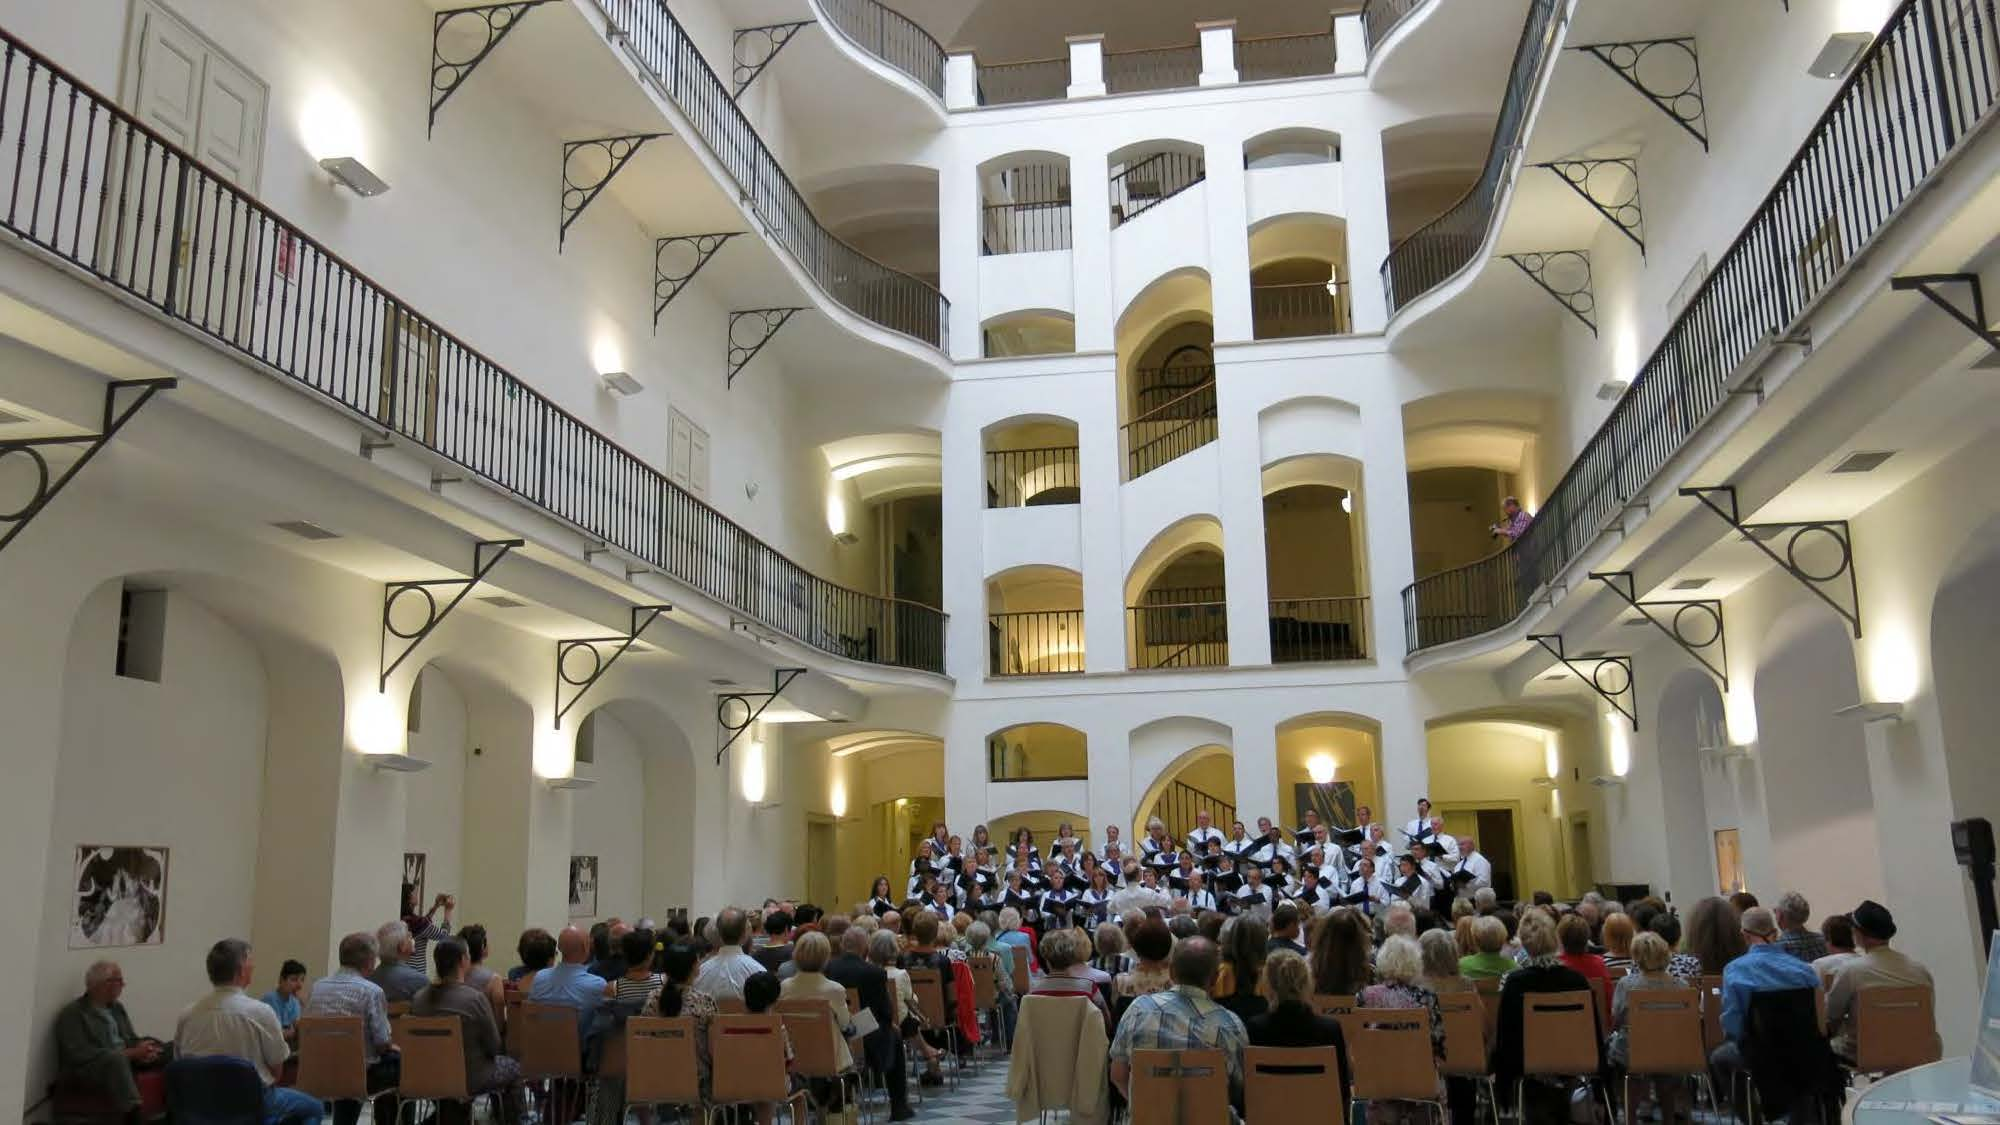 The Czech Museum of Music